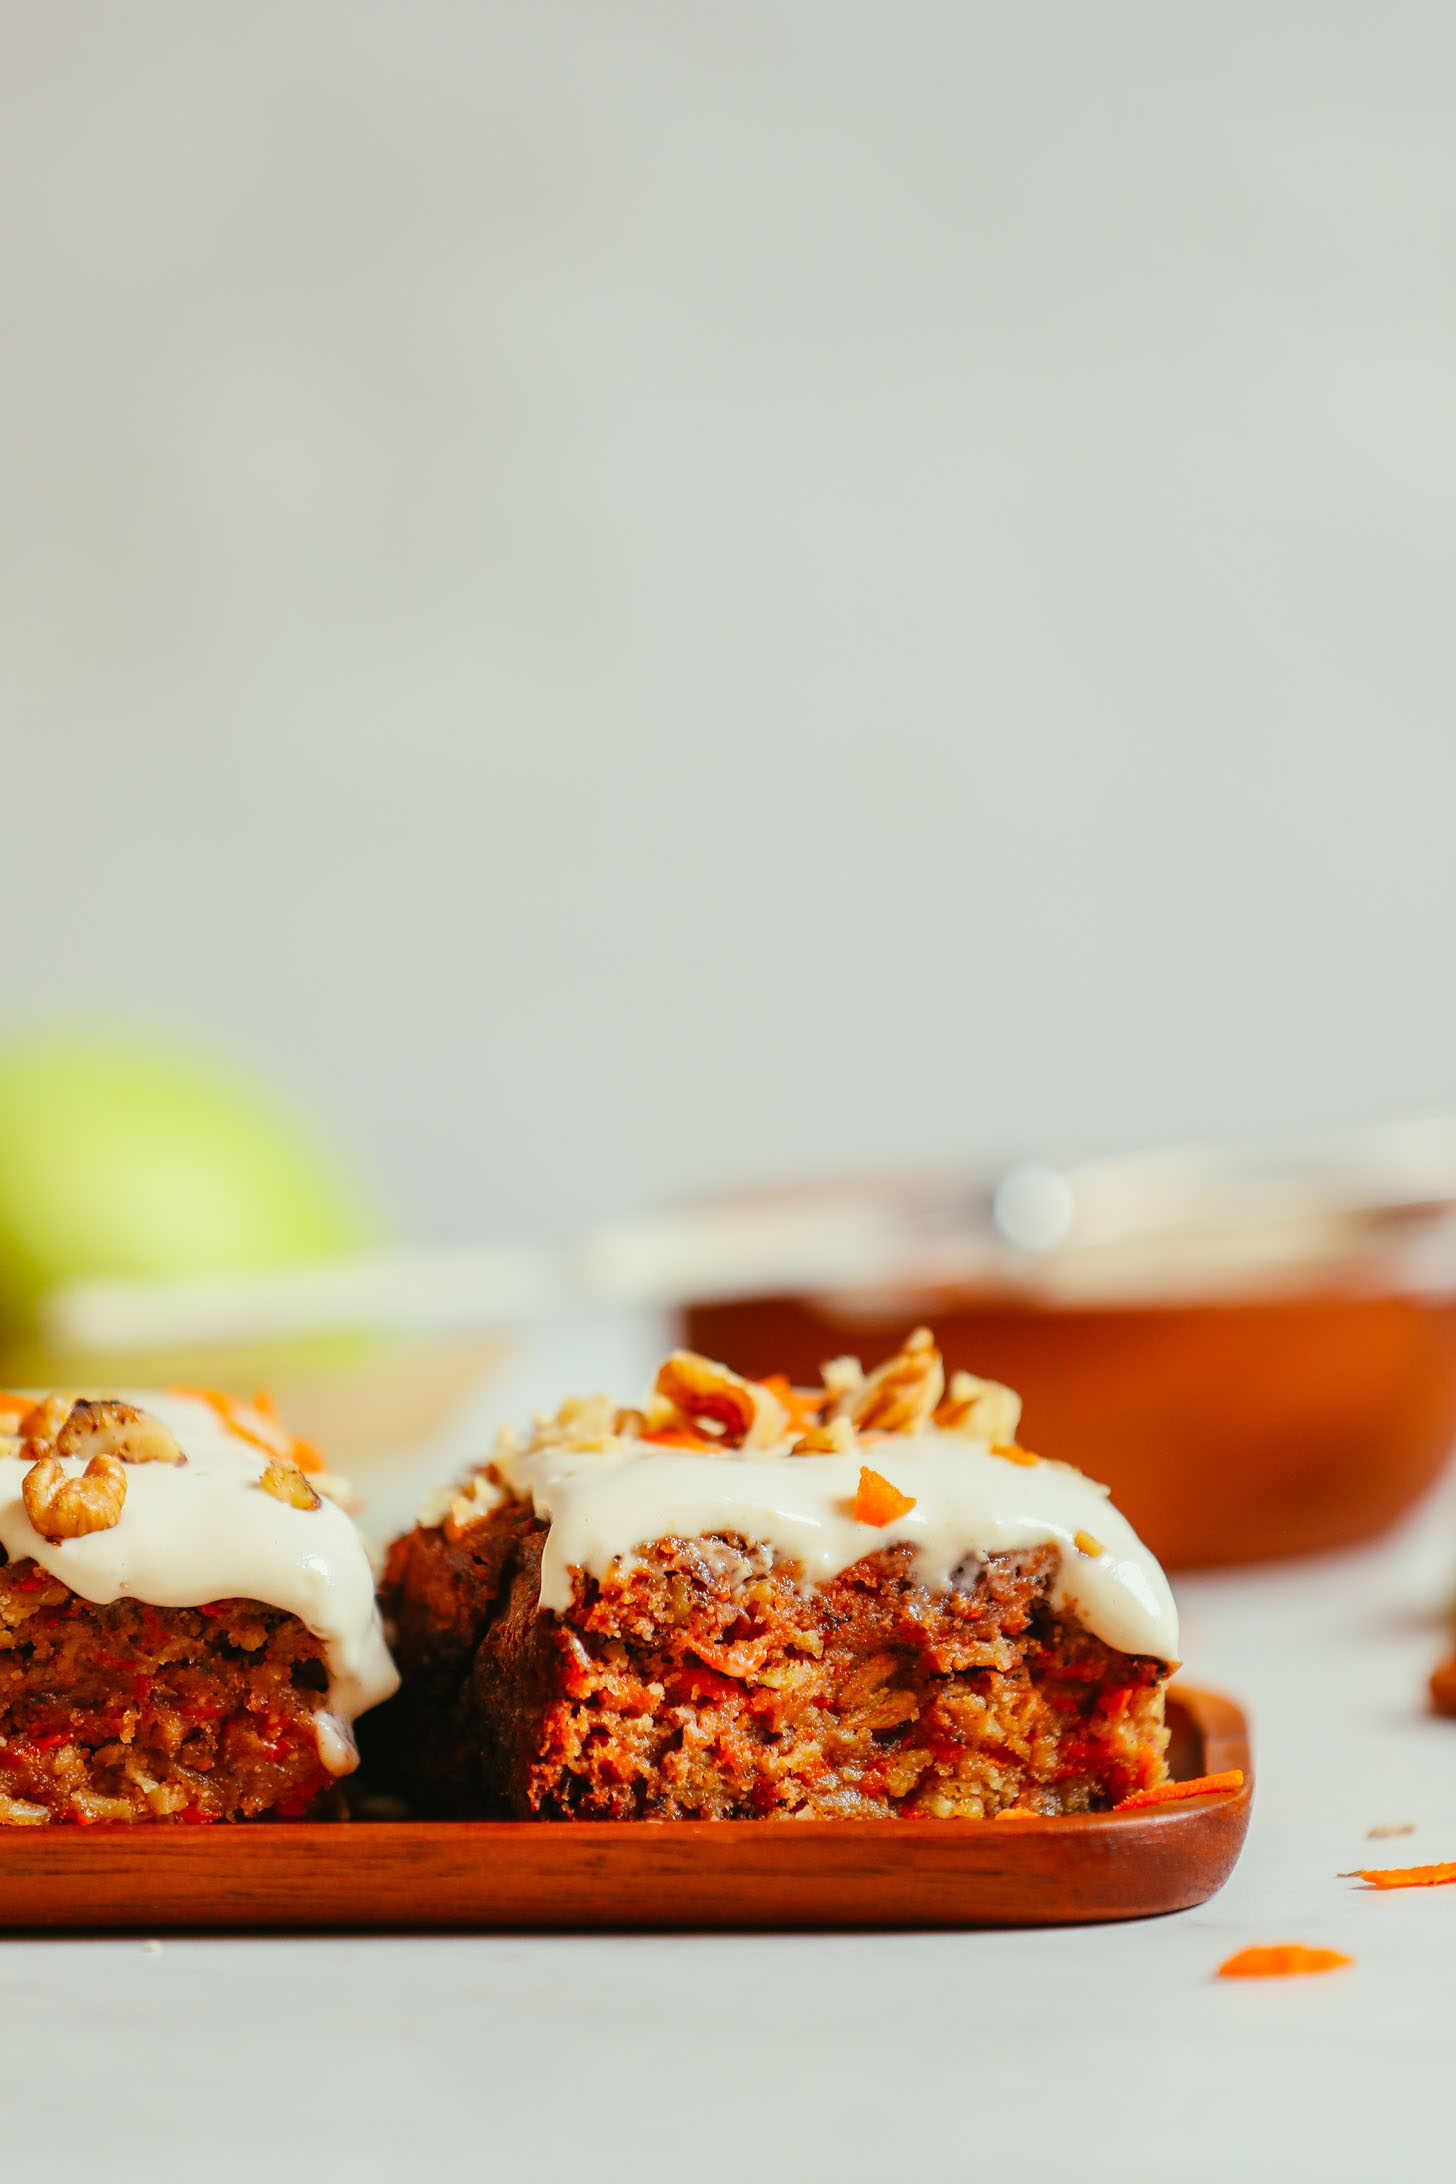 Slices of Carrot Apple Snack Cake resting on a wood platter